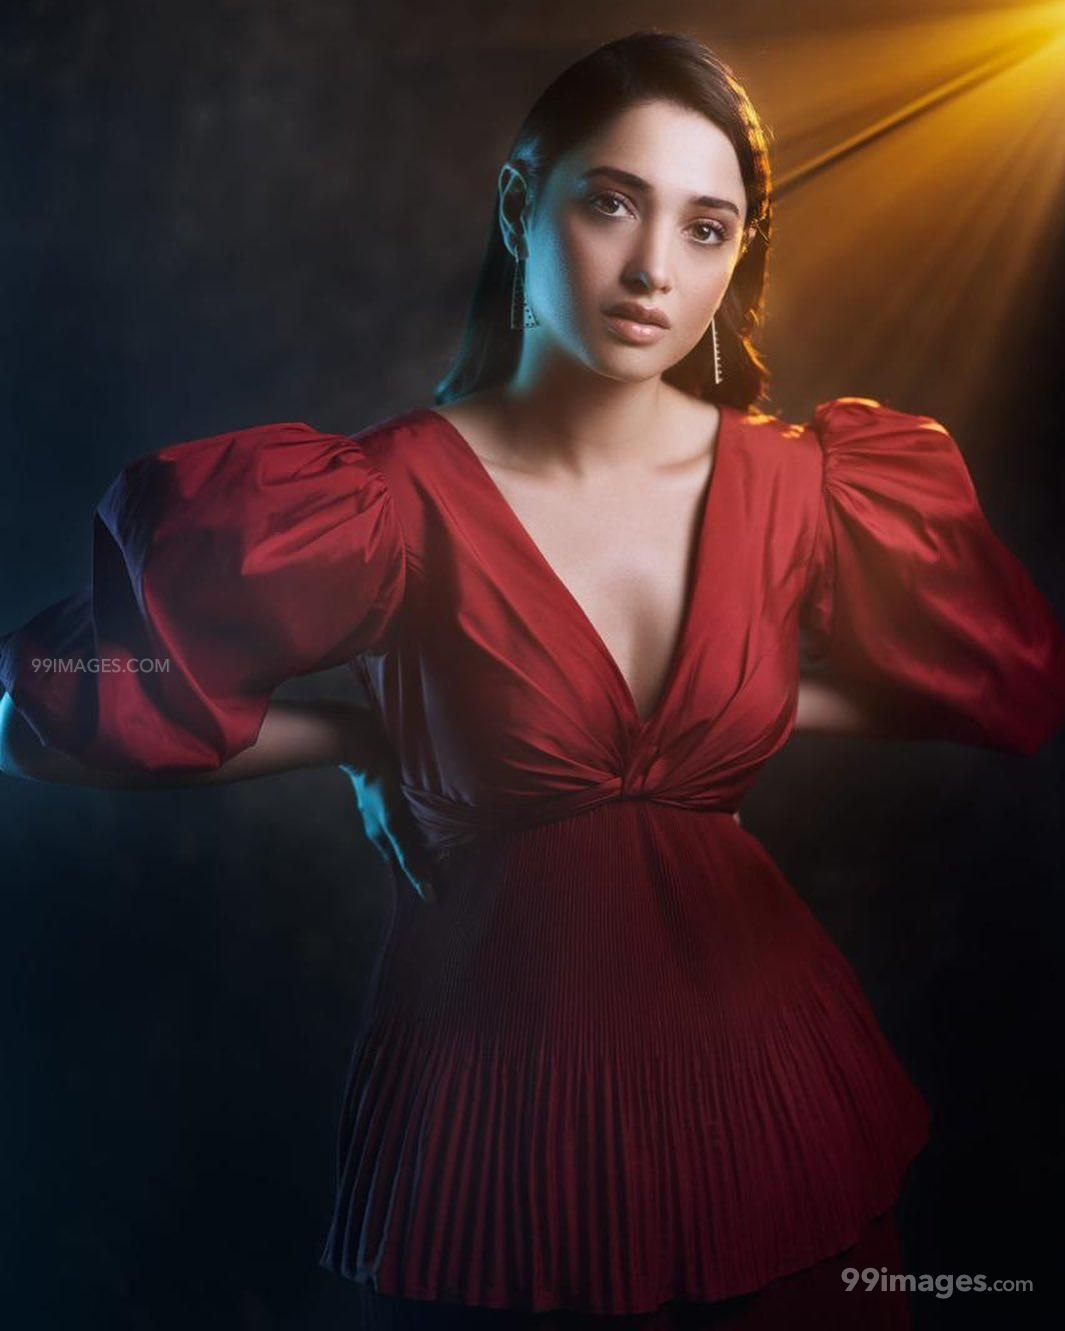 Tamanna Bhatia Hot Beautiful HD Photos / Wallpapers, WhatsApp DP (1080p) (693028) - Tamanna Bhatia